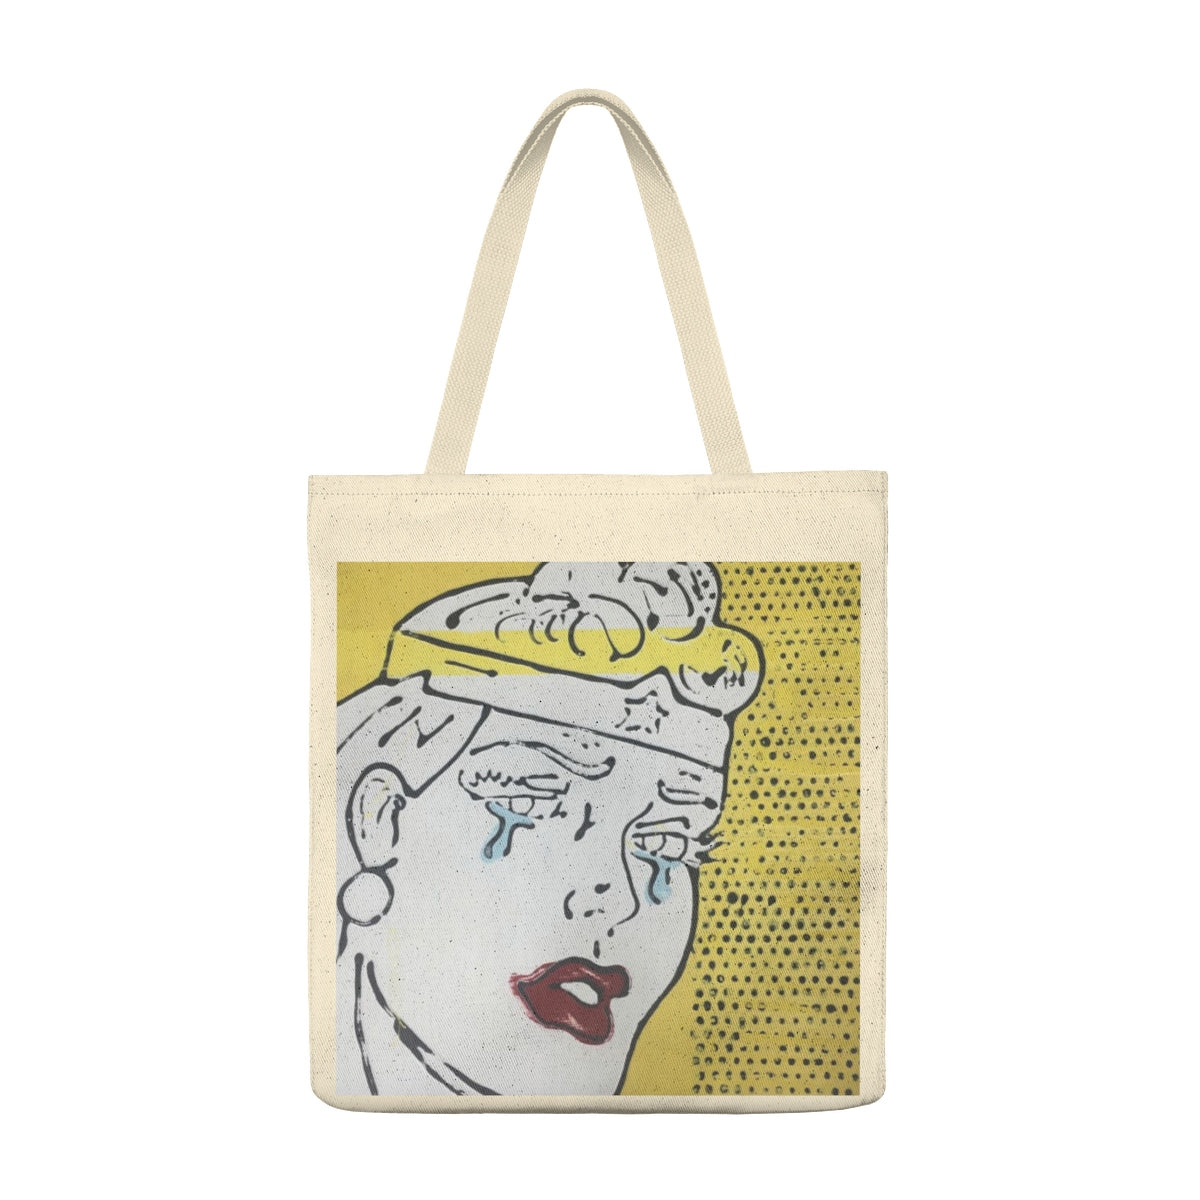 (Tears & Lipstick Yellow) Shoulder Tote Bag - Roomy